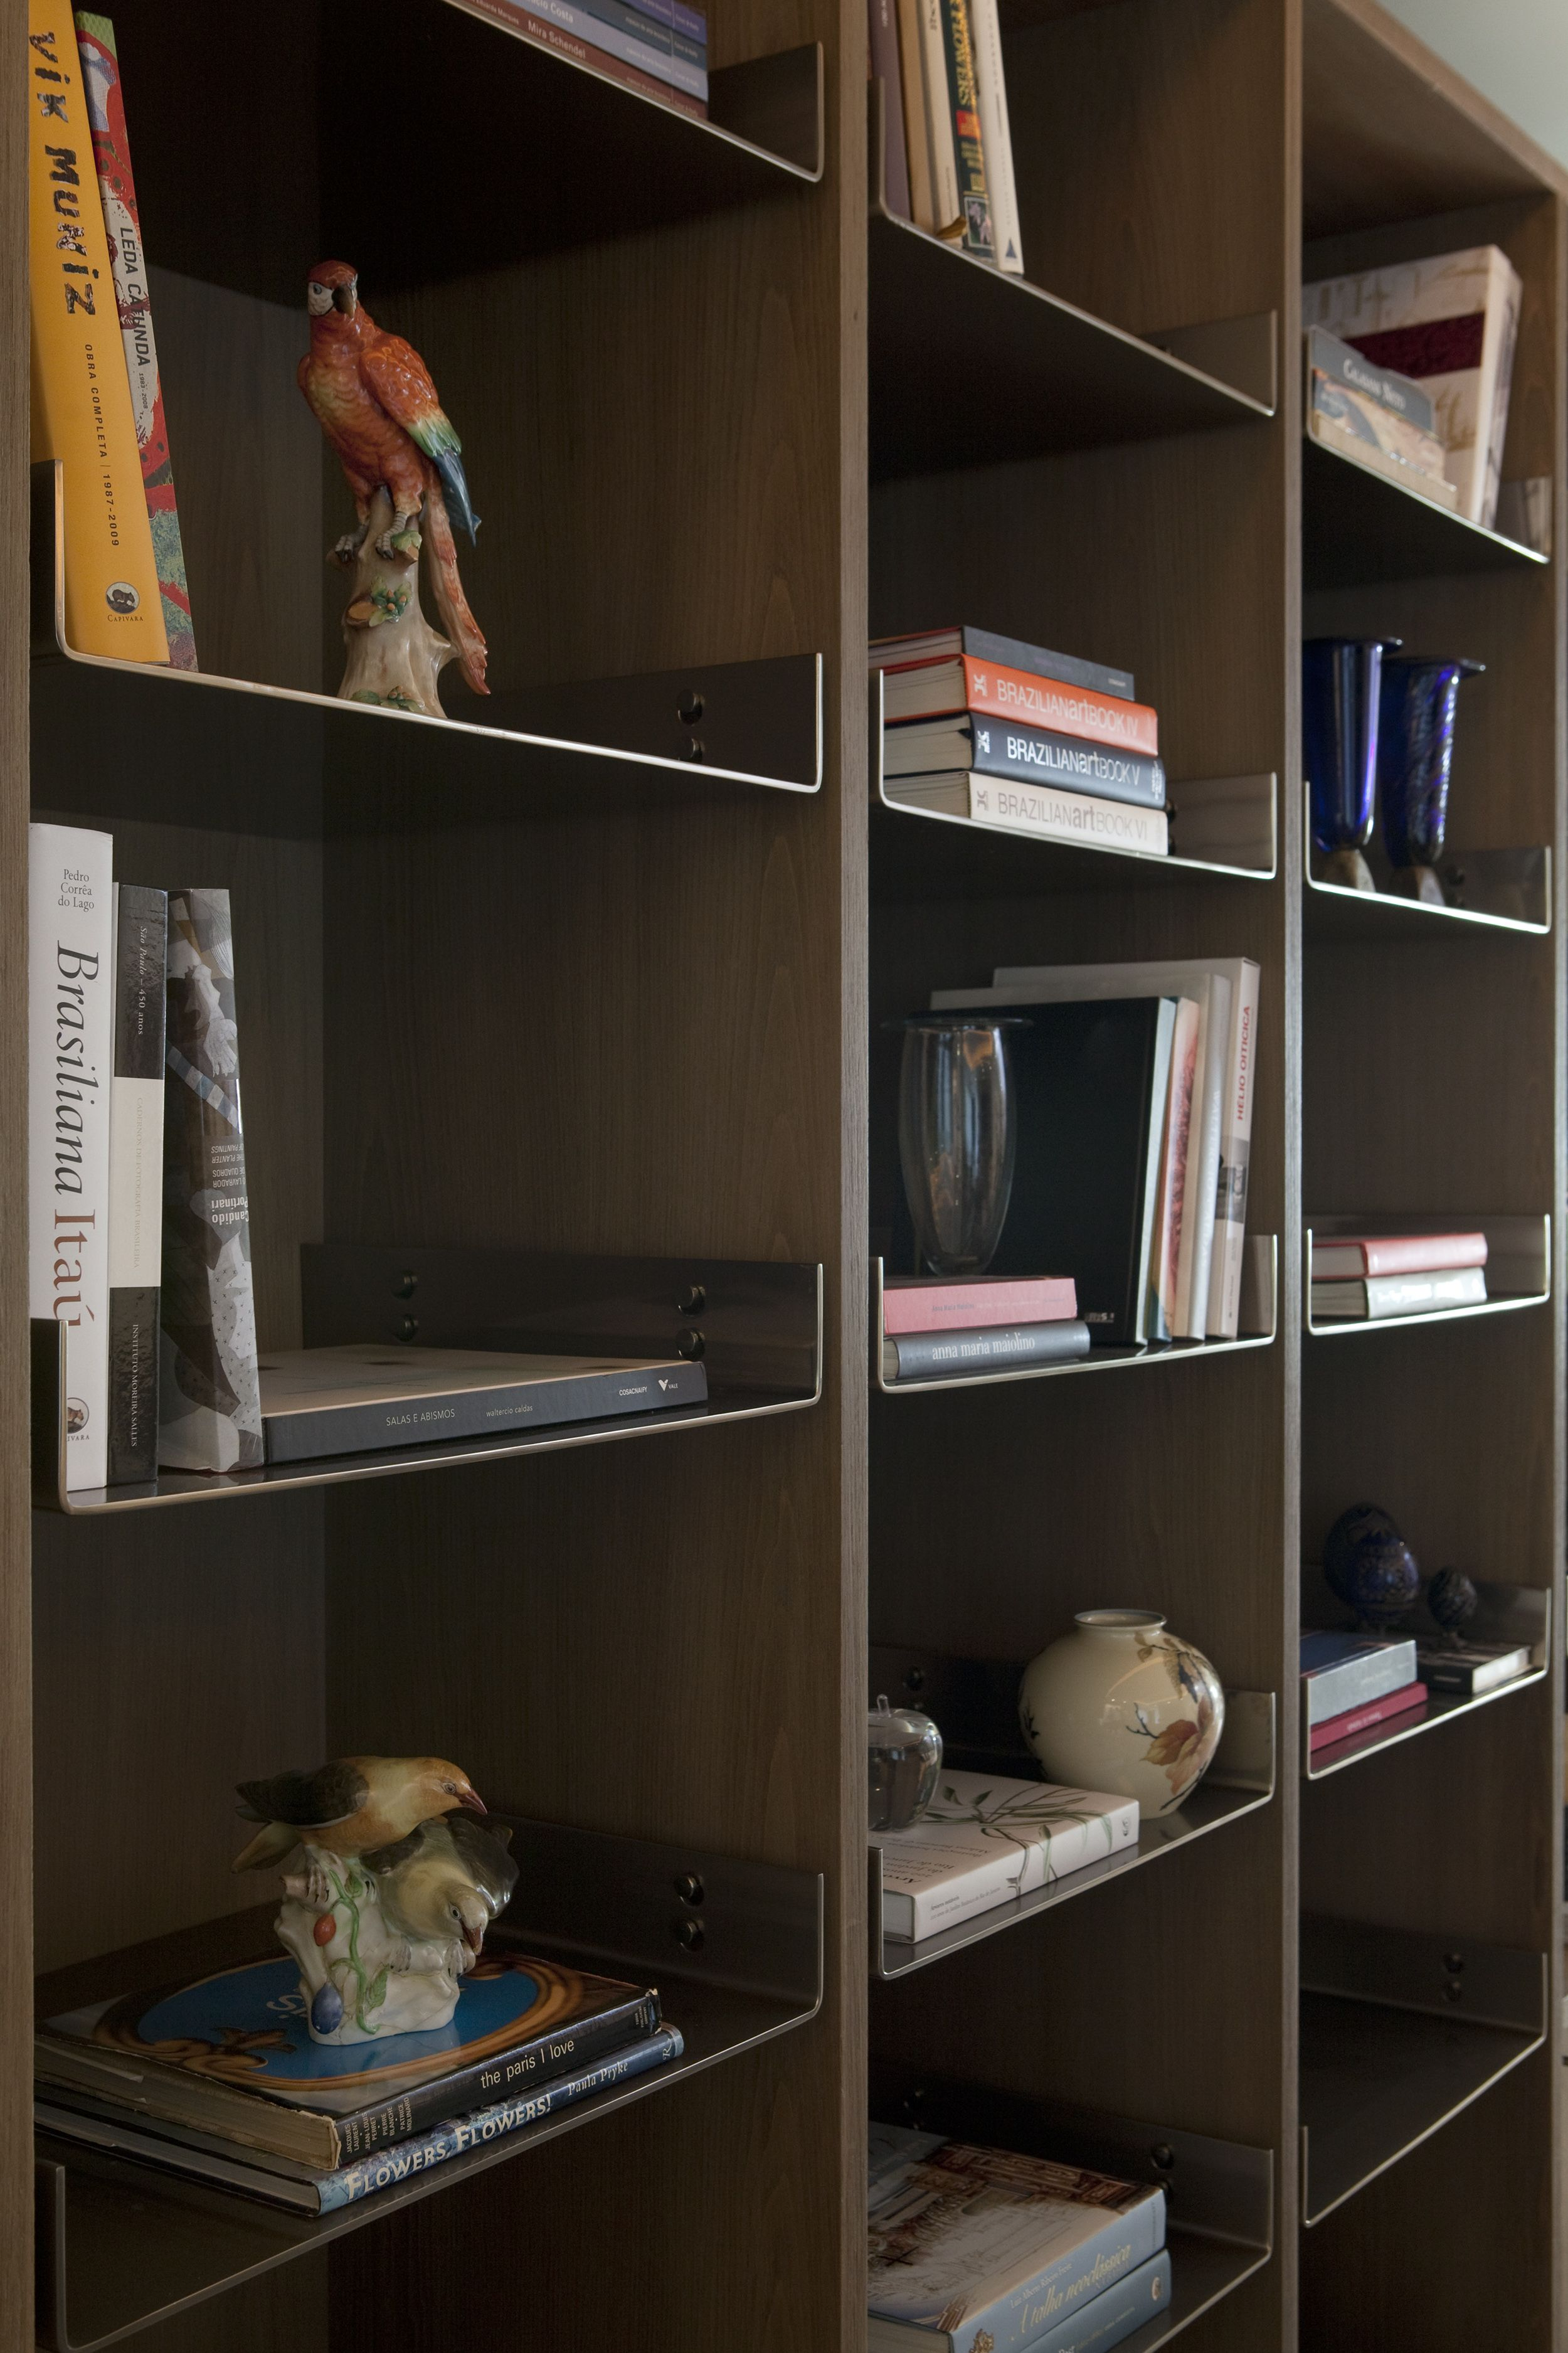 Designer Bookcases estante, clean, cool, design, interior designer, bookcase www